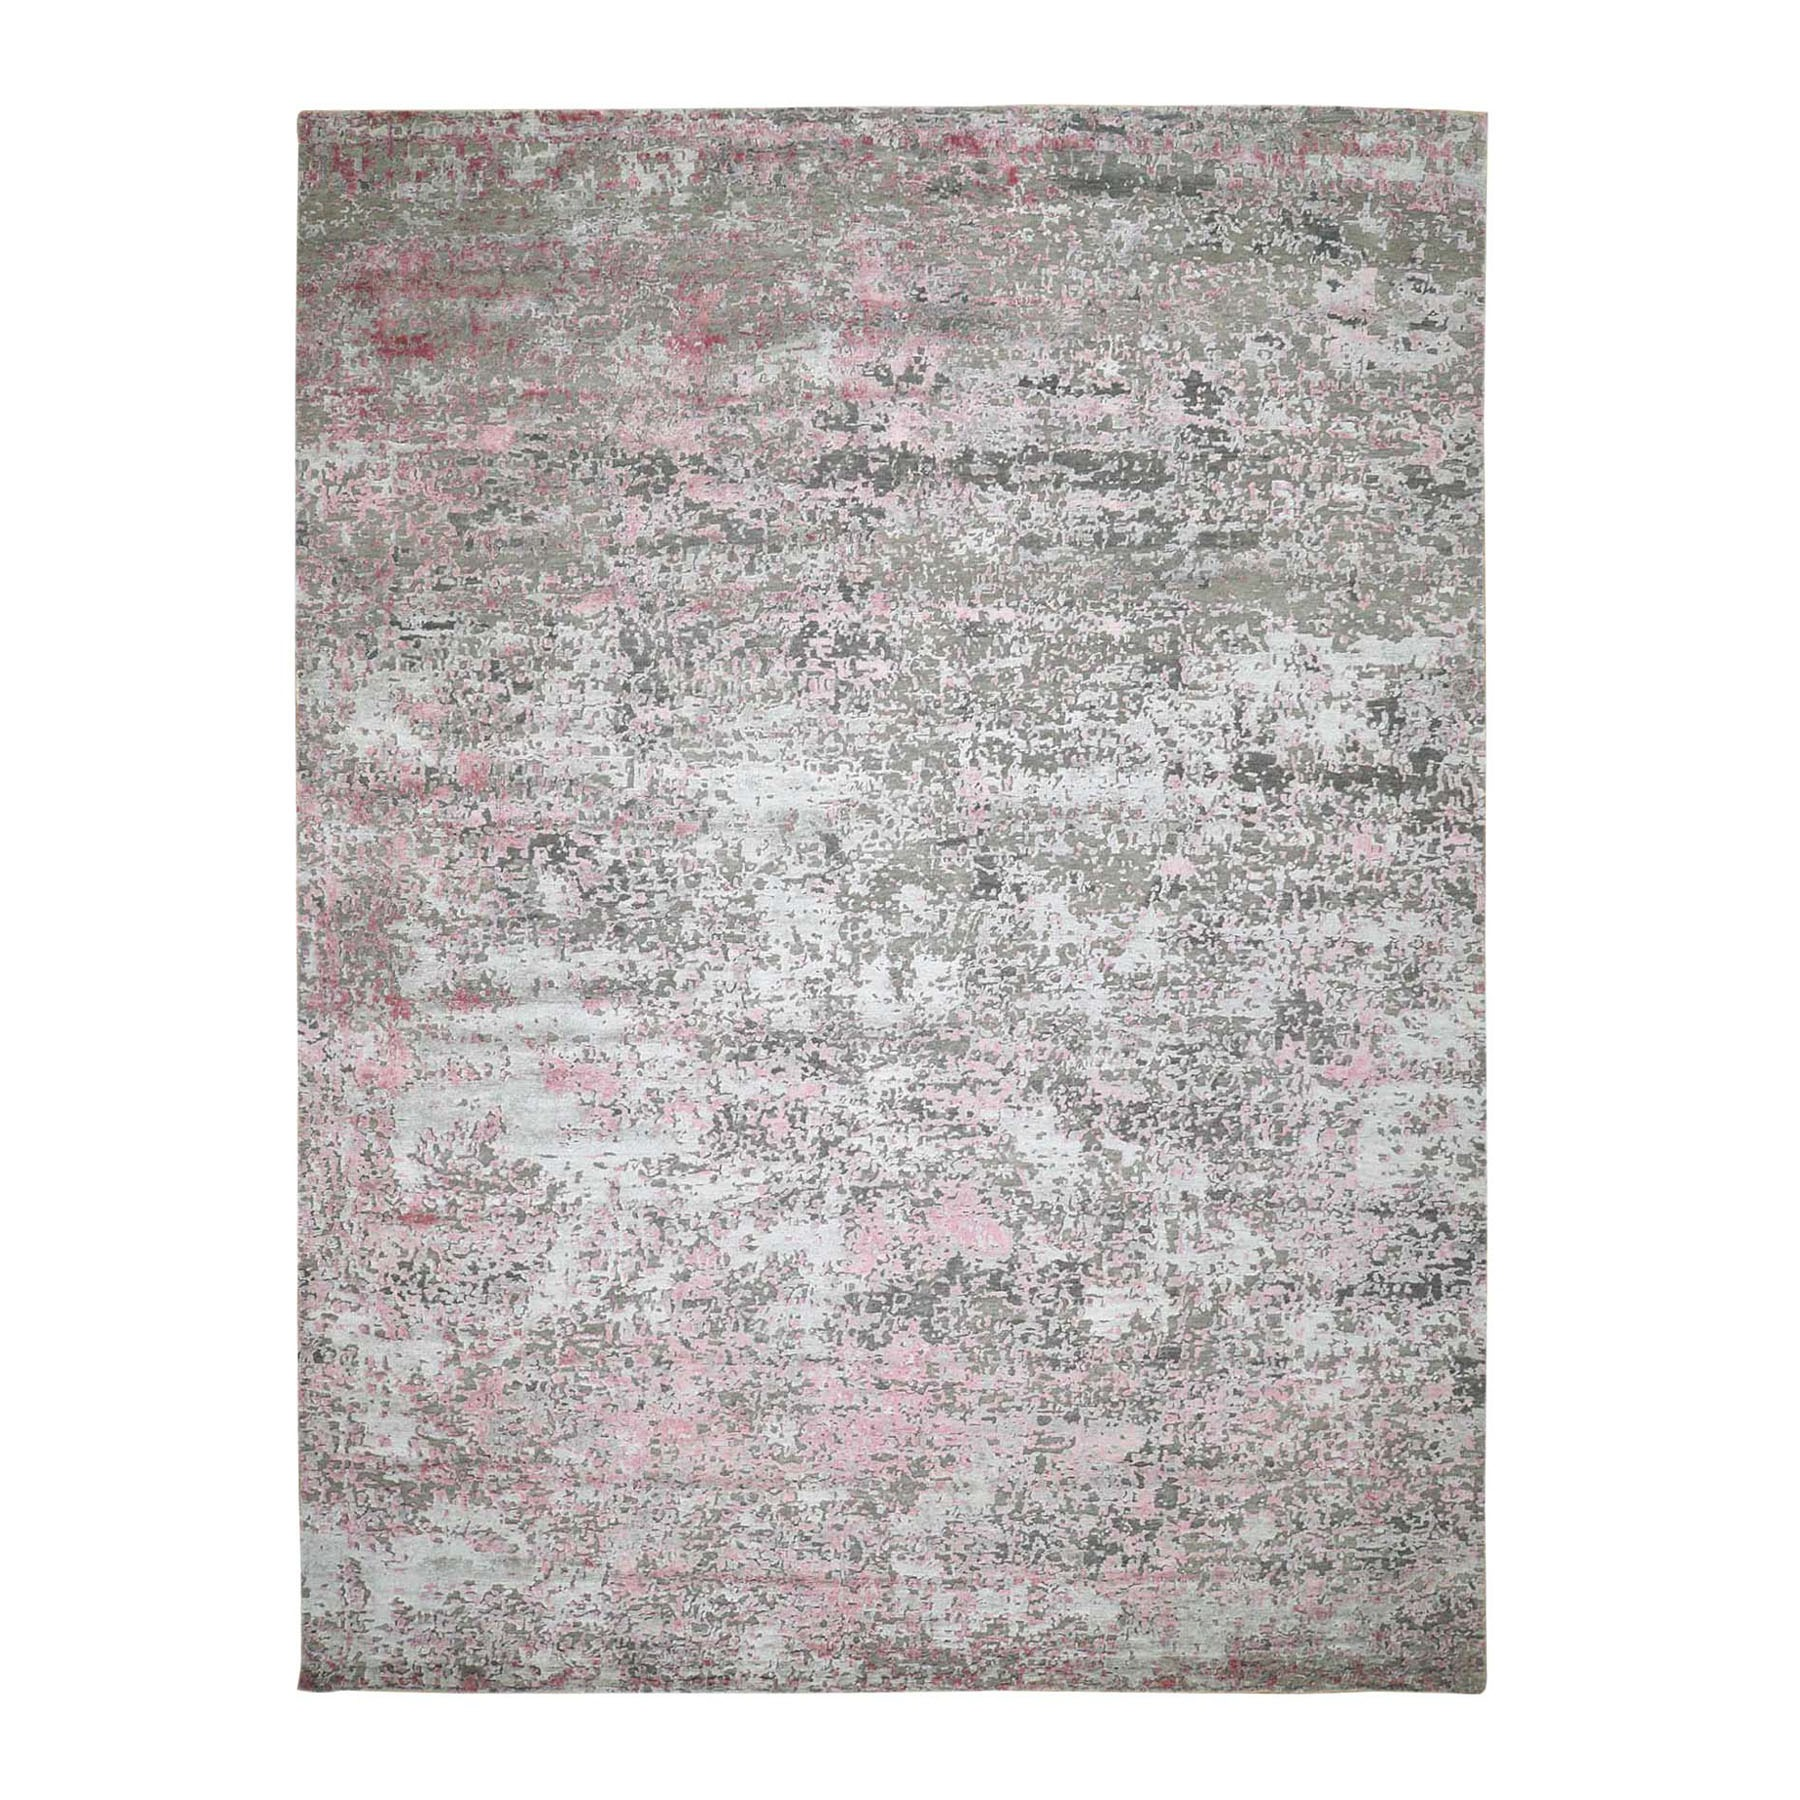 9'x12' Pink Hi-Low Pile Abstract Design Wool And Silk Hand Knotted Oriental Rug